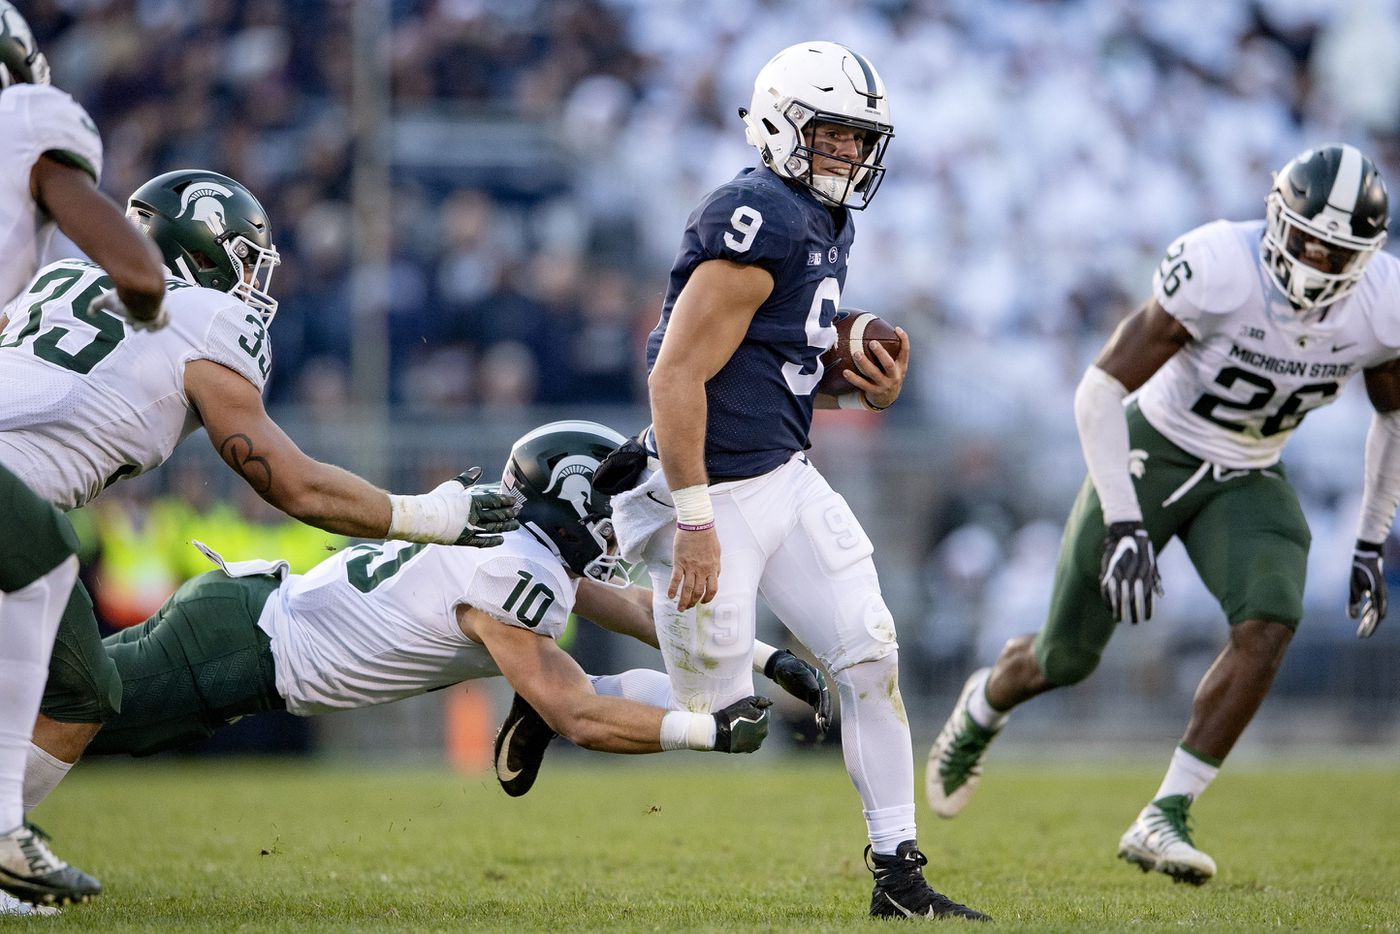 Penn State defeats Indiana   Five observations